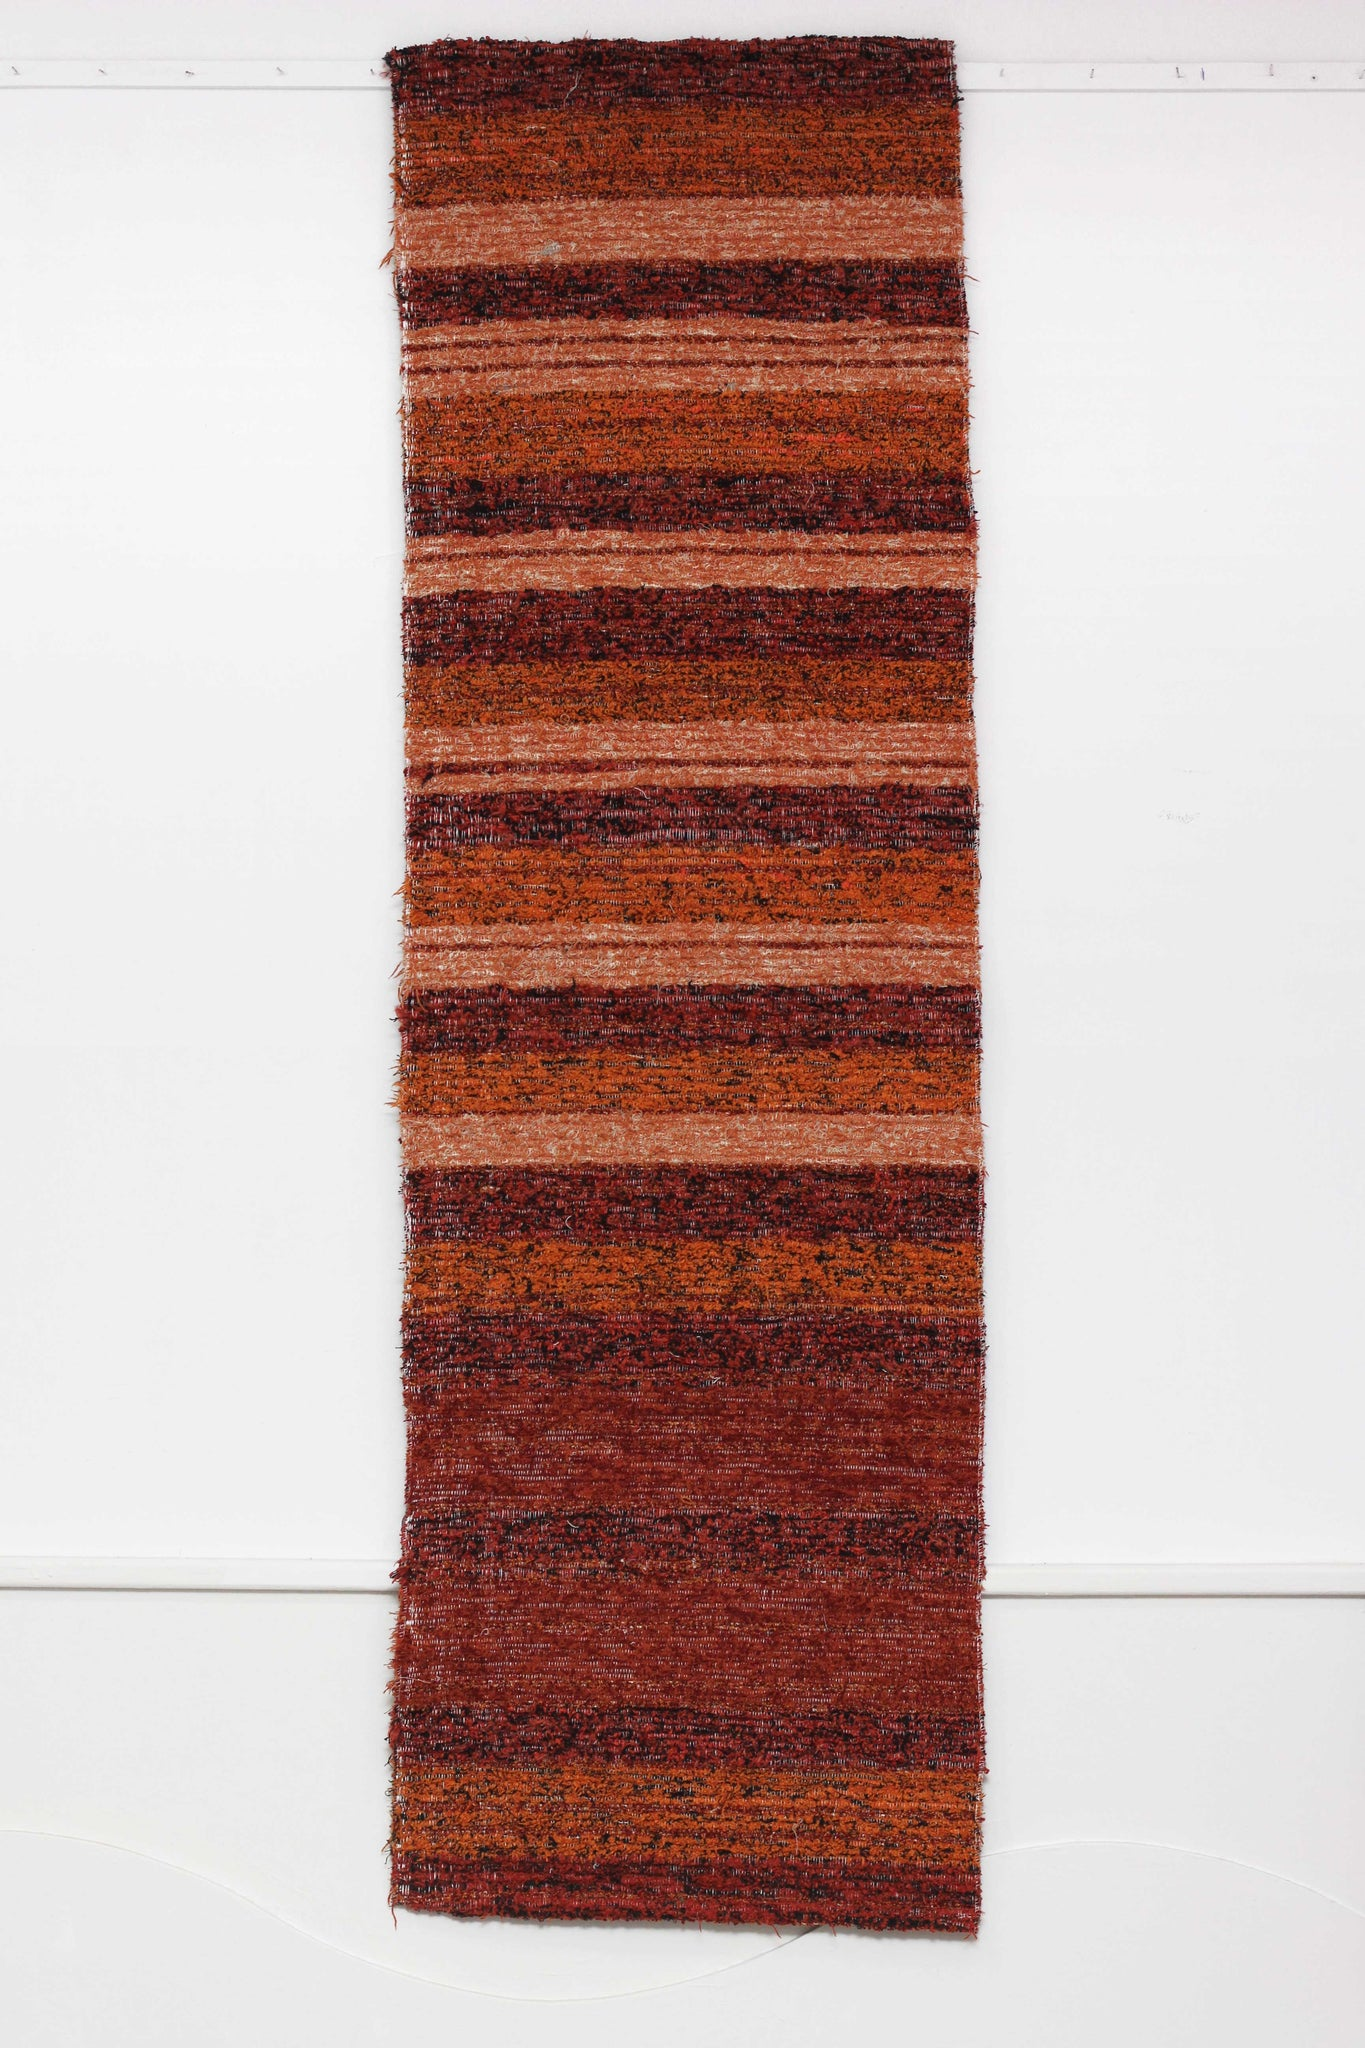 Terracotta Ibiza handmade runner - ideal as a hall runner, kitchen rug or foot of bed rug